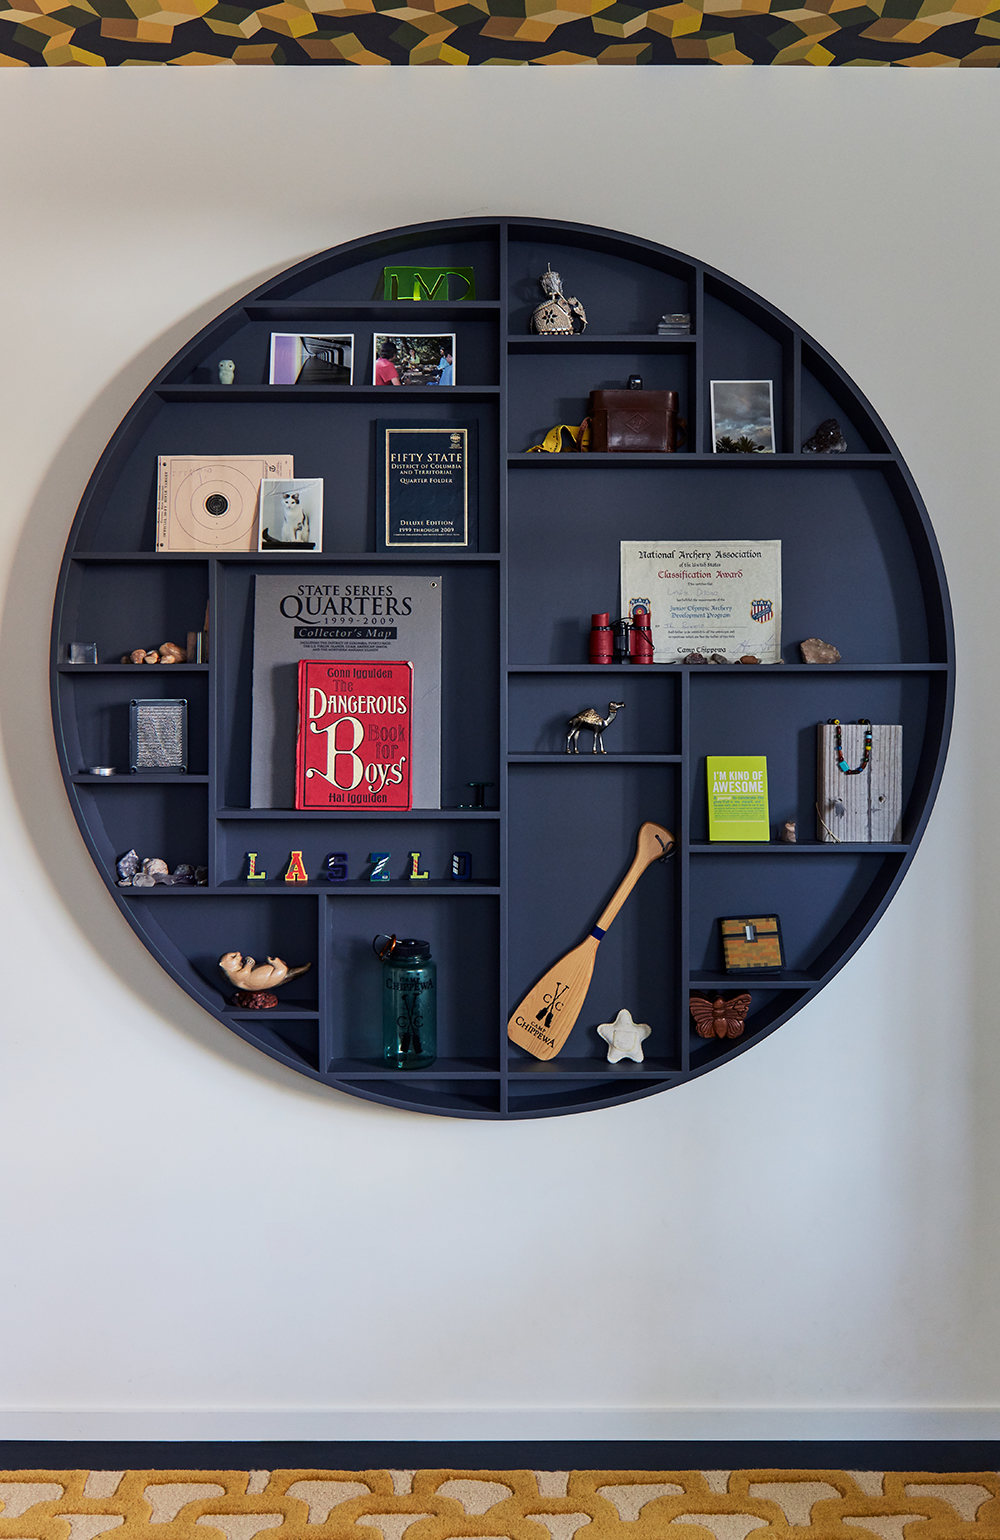 The circular display shelf was custom-made by Nest Building in Pacifica.